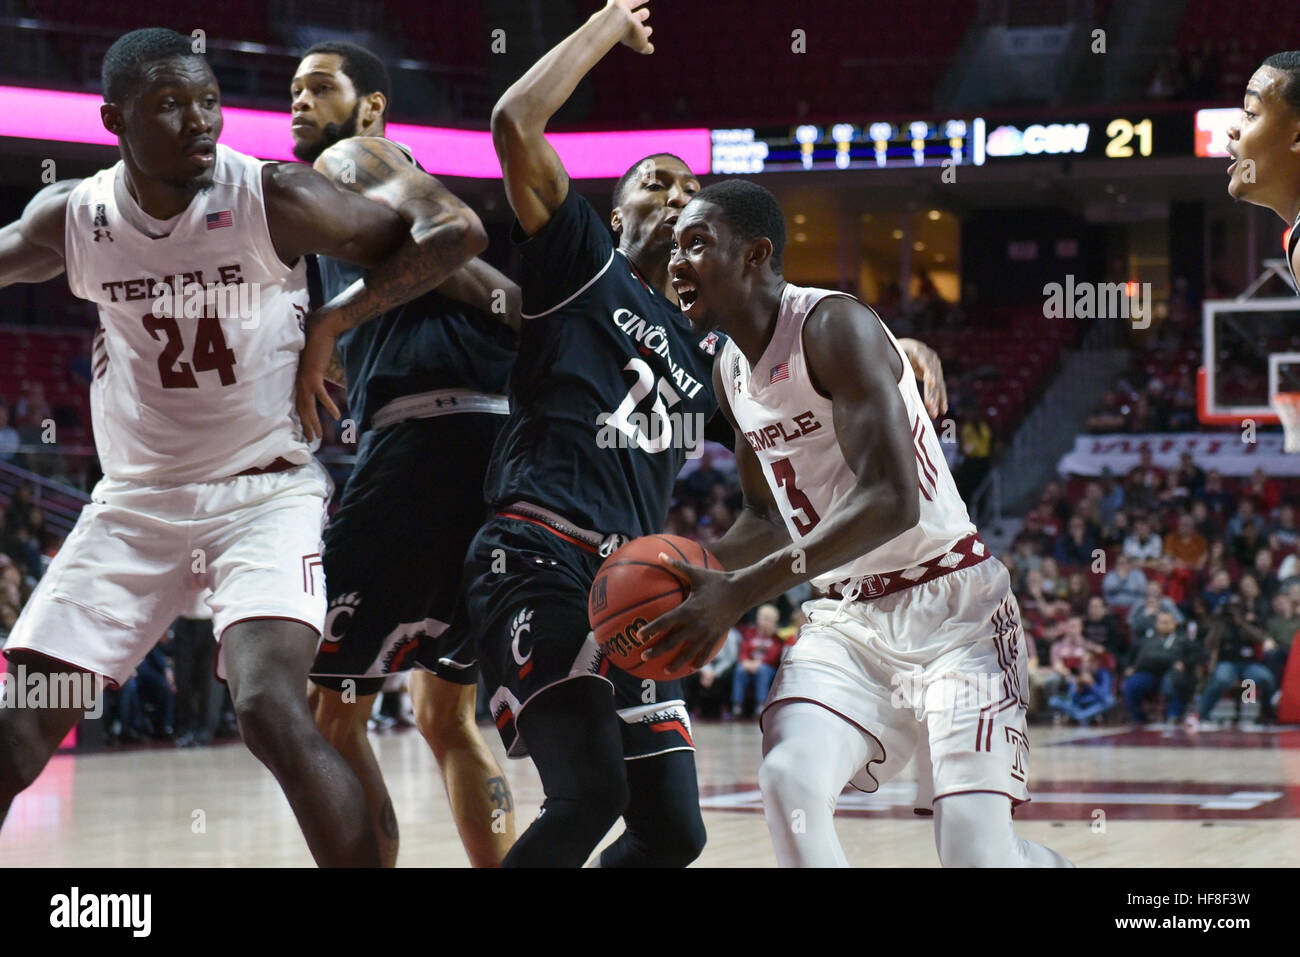 b96850265ca (3) drives down the lane by Cincinnati Bearcats guard KEVIN JOHNSON (25)  during the American Athletic Conference basketball game being ...